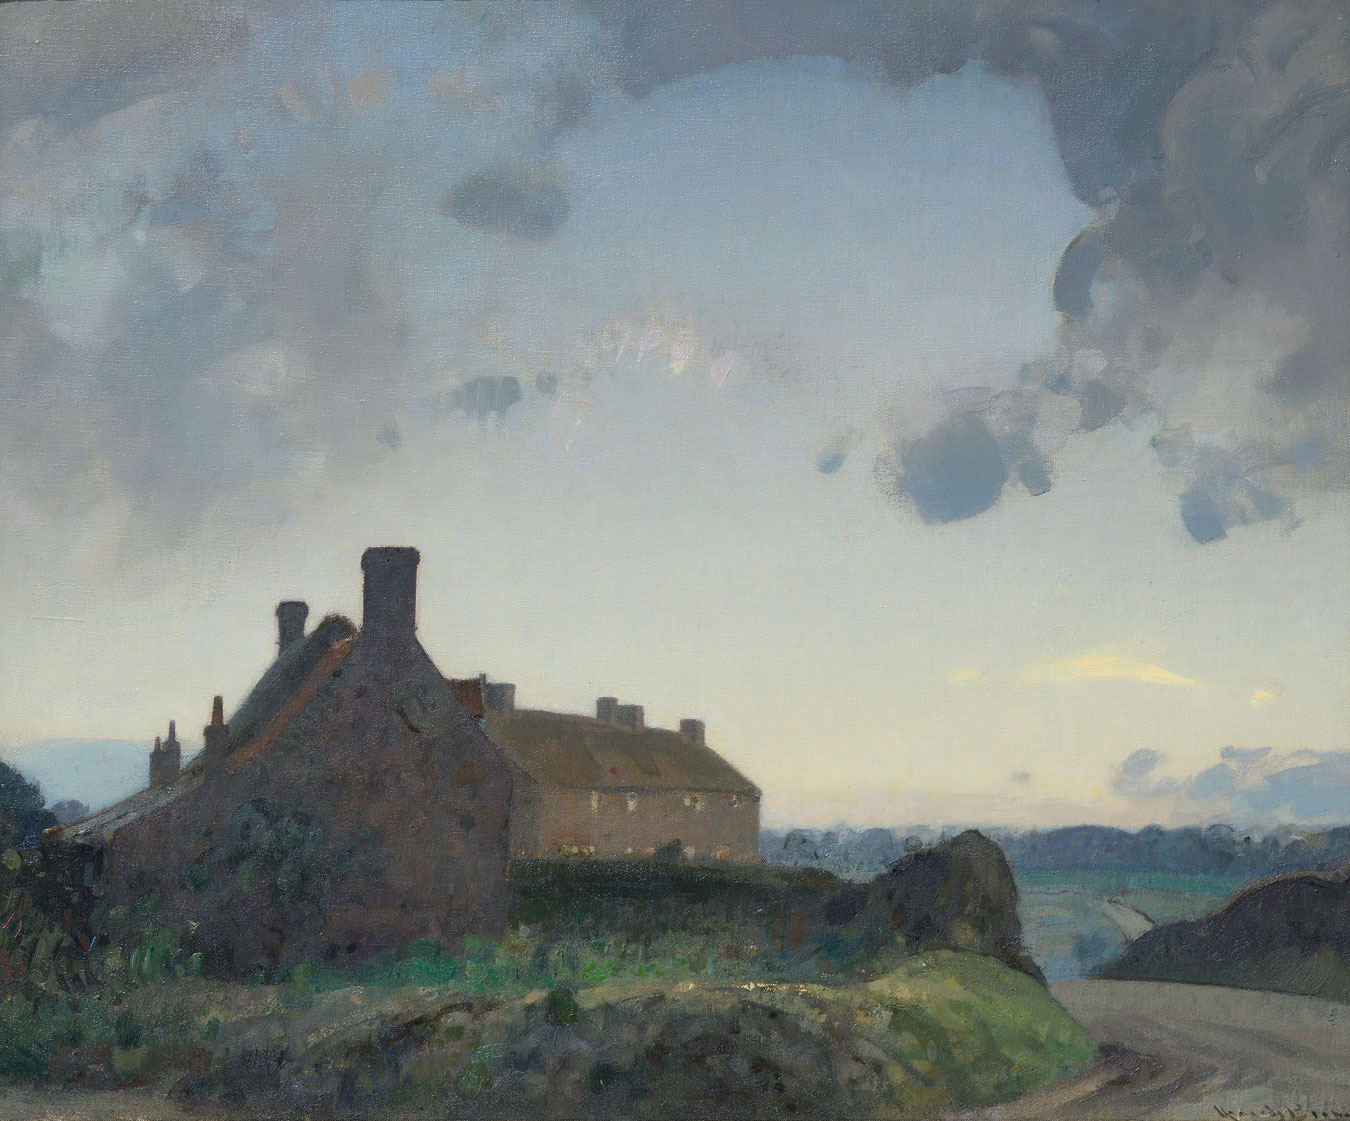 The End of the Village, Hadiscoe by  Sir John Alfred Arnesby Brown (1866 - 1955)